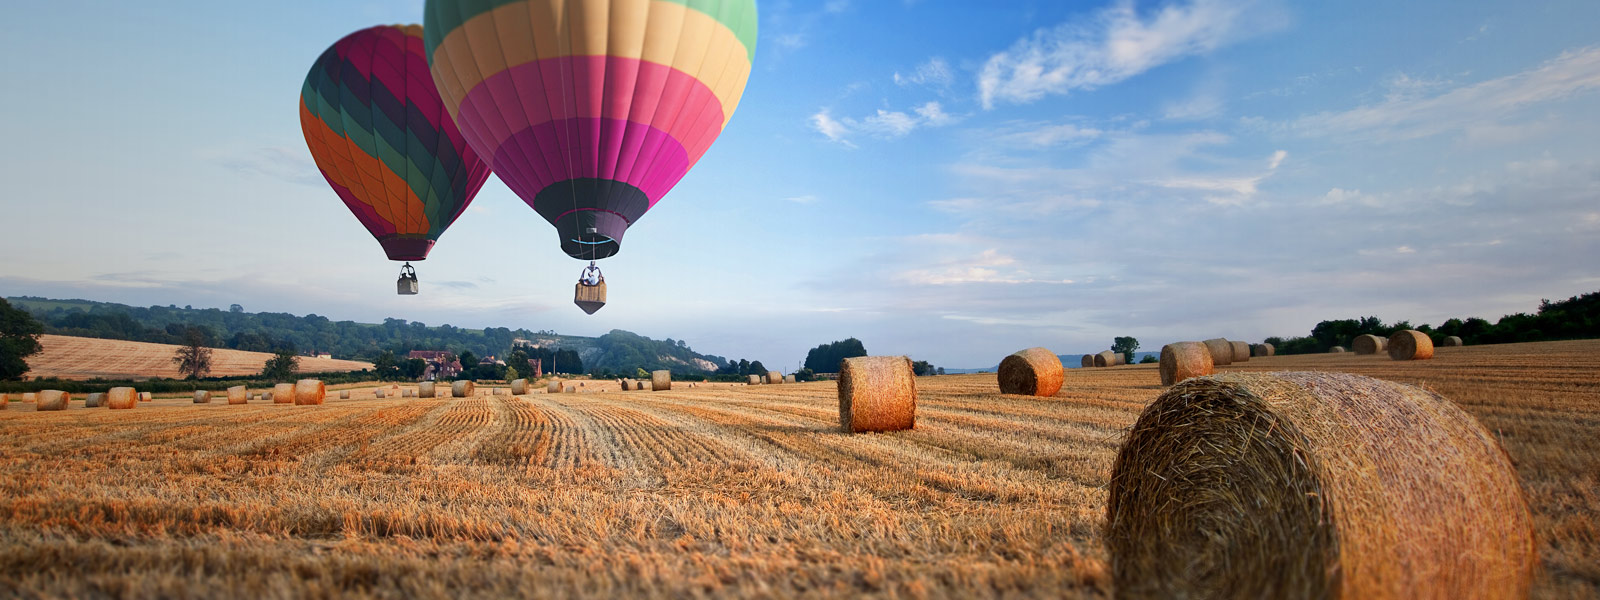 Hot air balloons flight